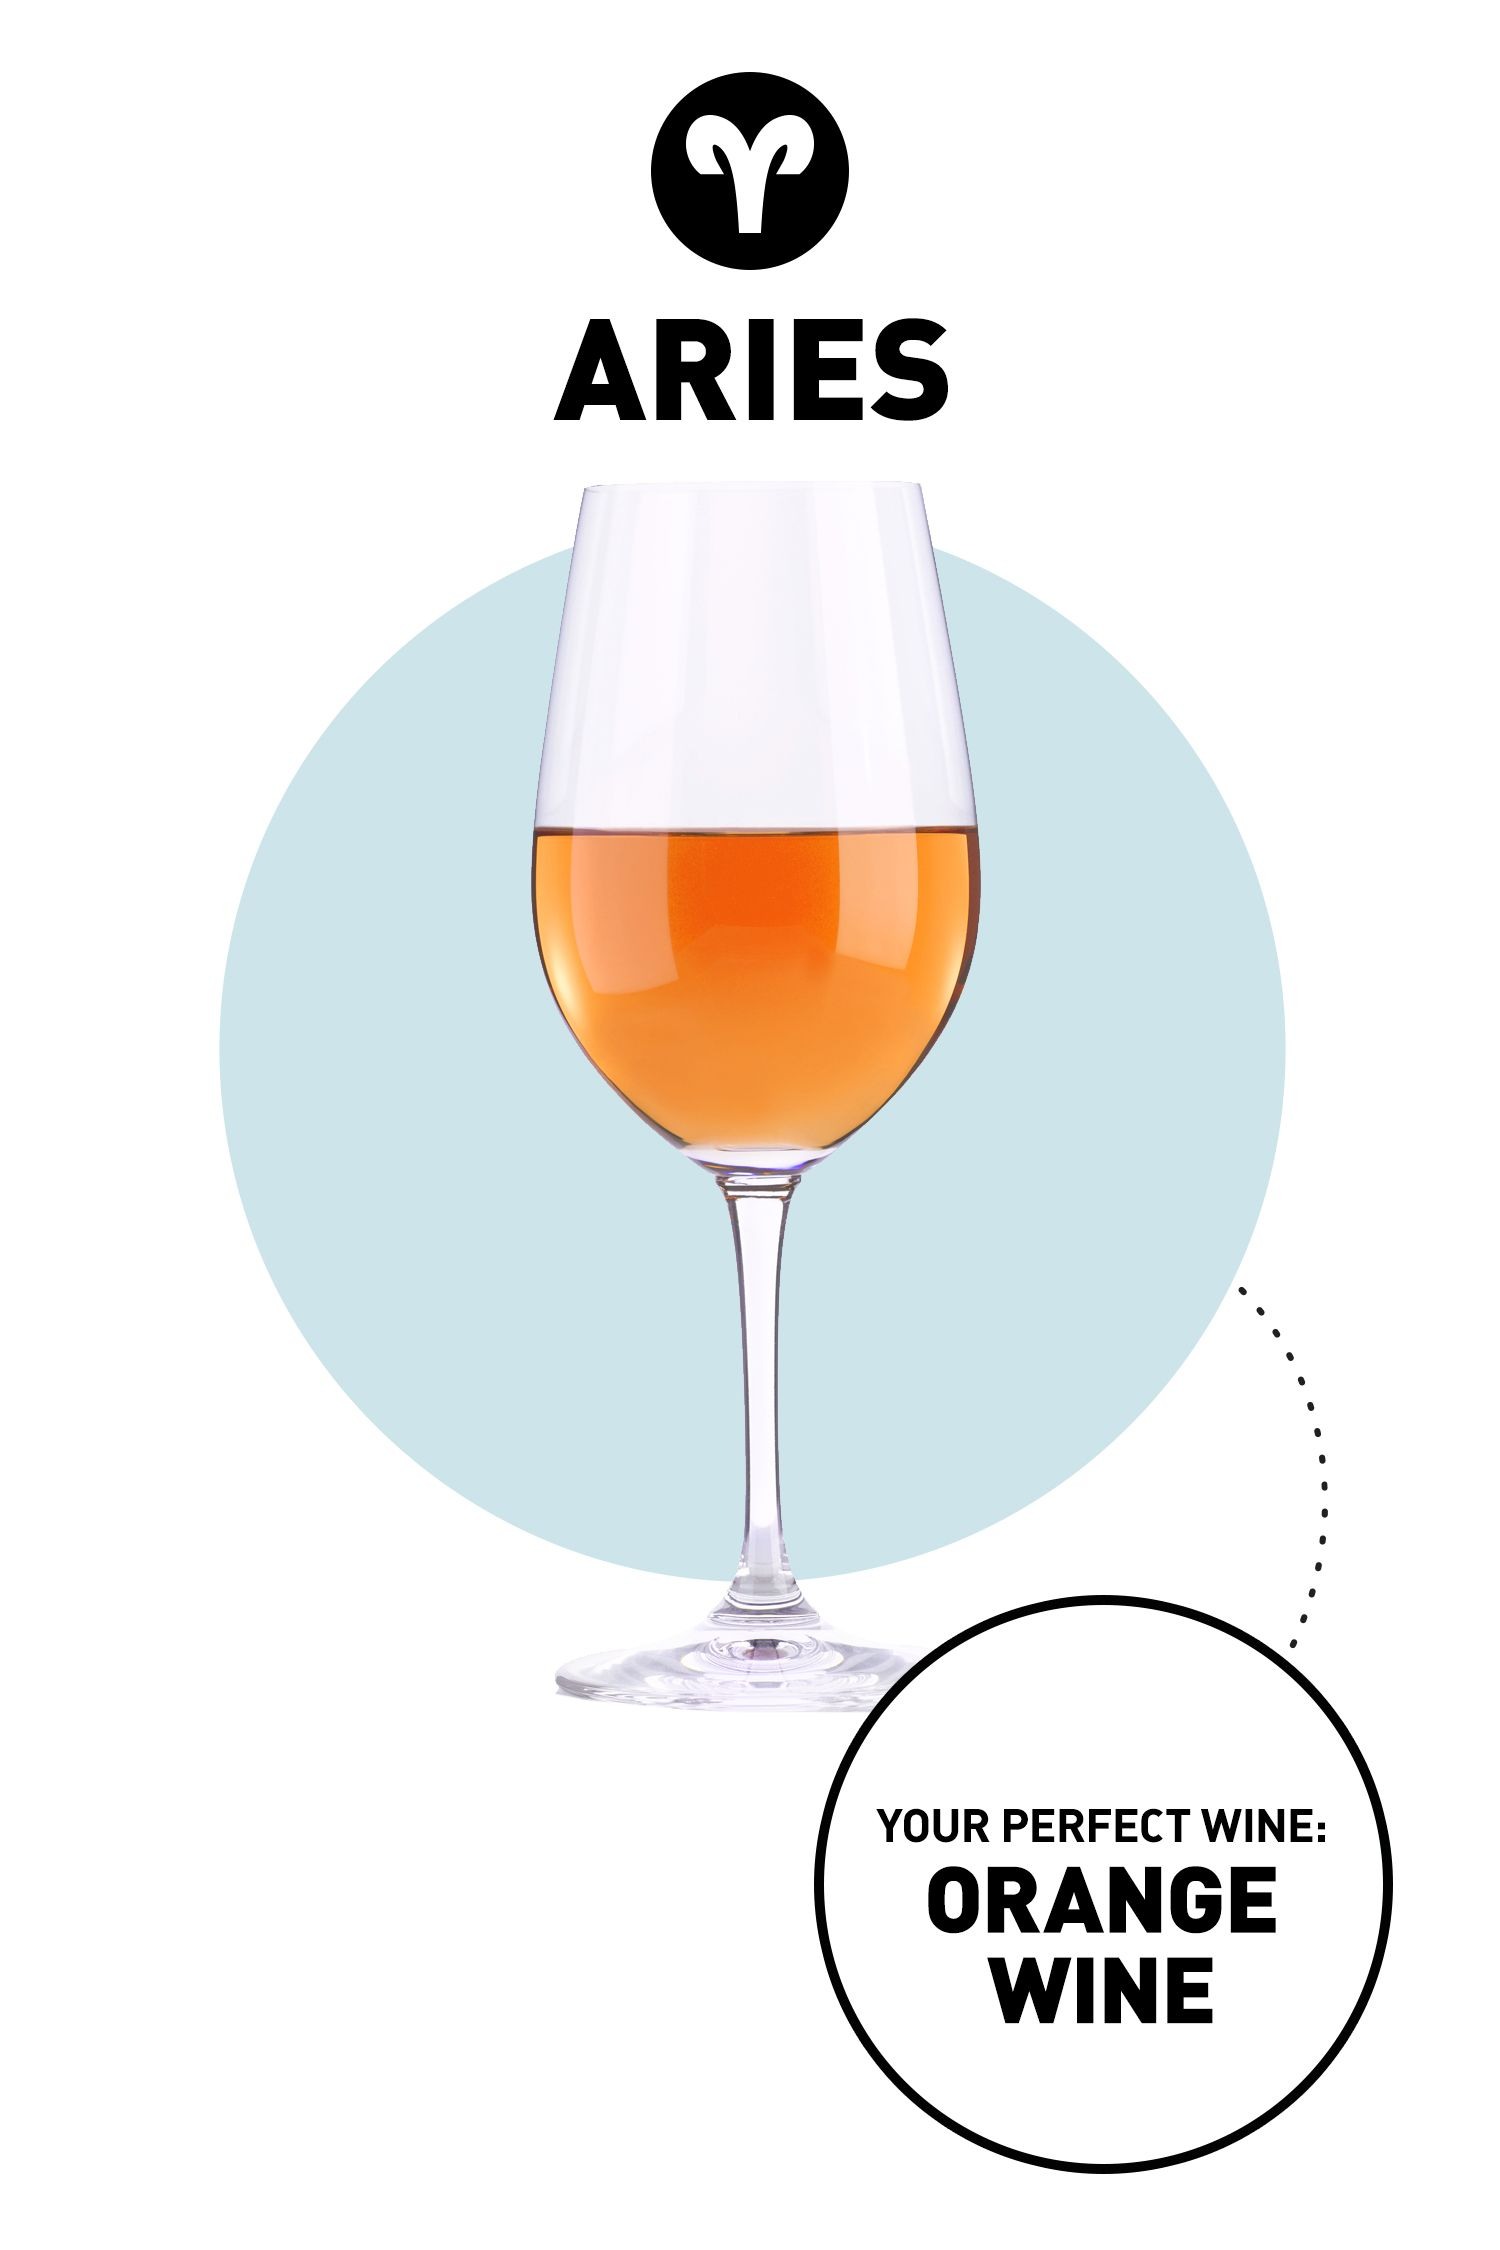 """<p class=""""MsoNormal""""><strong>Your Drink</strong>: <a href=""""http://www.delish.com/food/news/a38844/orange-wines/"""">Orange Wine</a><o:p></o:p></p><p class=""""MsoNormal""""><strong>Why:</strong> You're not one to get lost in a crowd, so in a world of red and white wine, go for the equally standout <em>orange</em>. Though technically a white wine, it's made like a red, resulting in a sunset-orange color and a tart flavor that's loaded with tannins.  The innovative way it's made is the perfect fit for someone who appreciates originality as much as you do.<o:p></o:p></p>"""